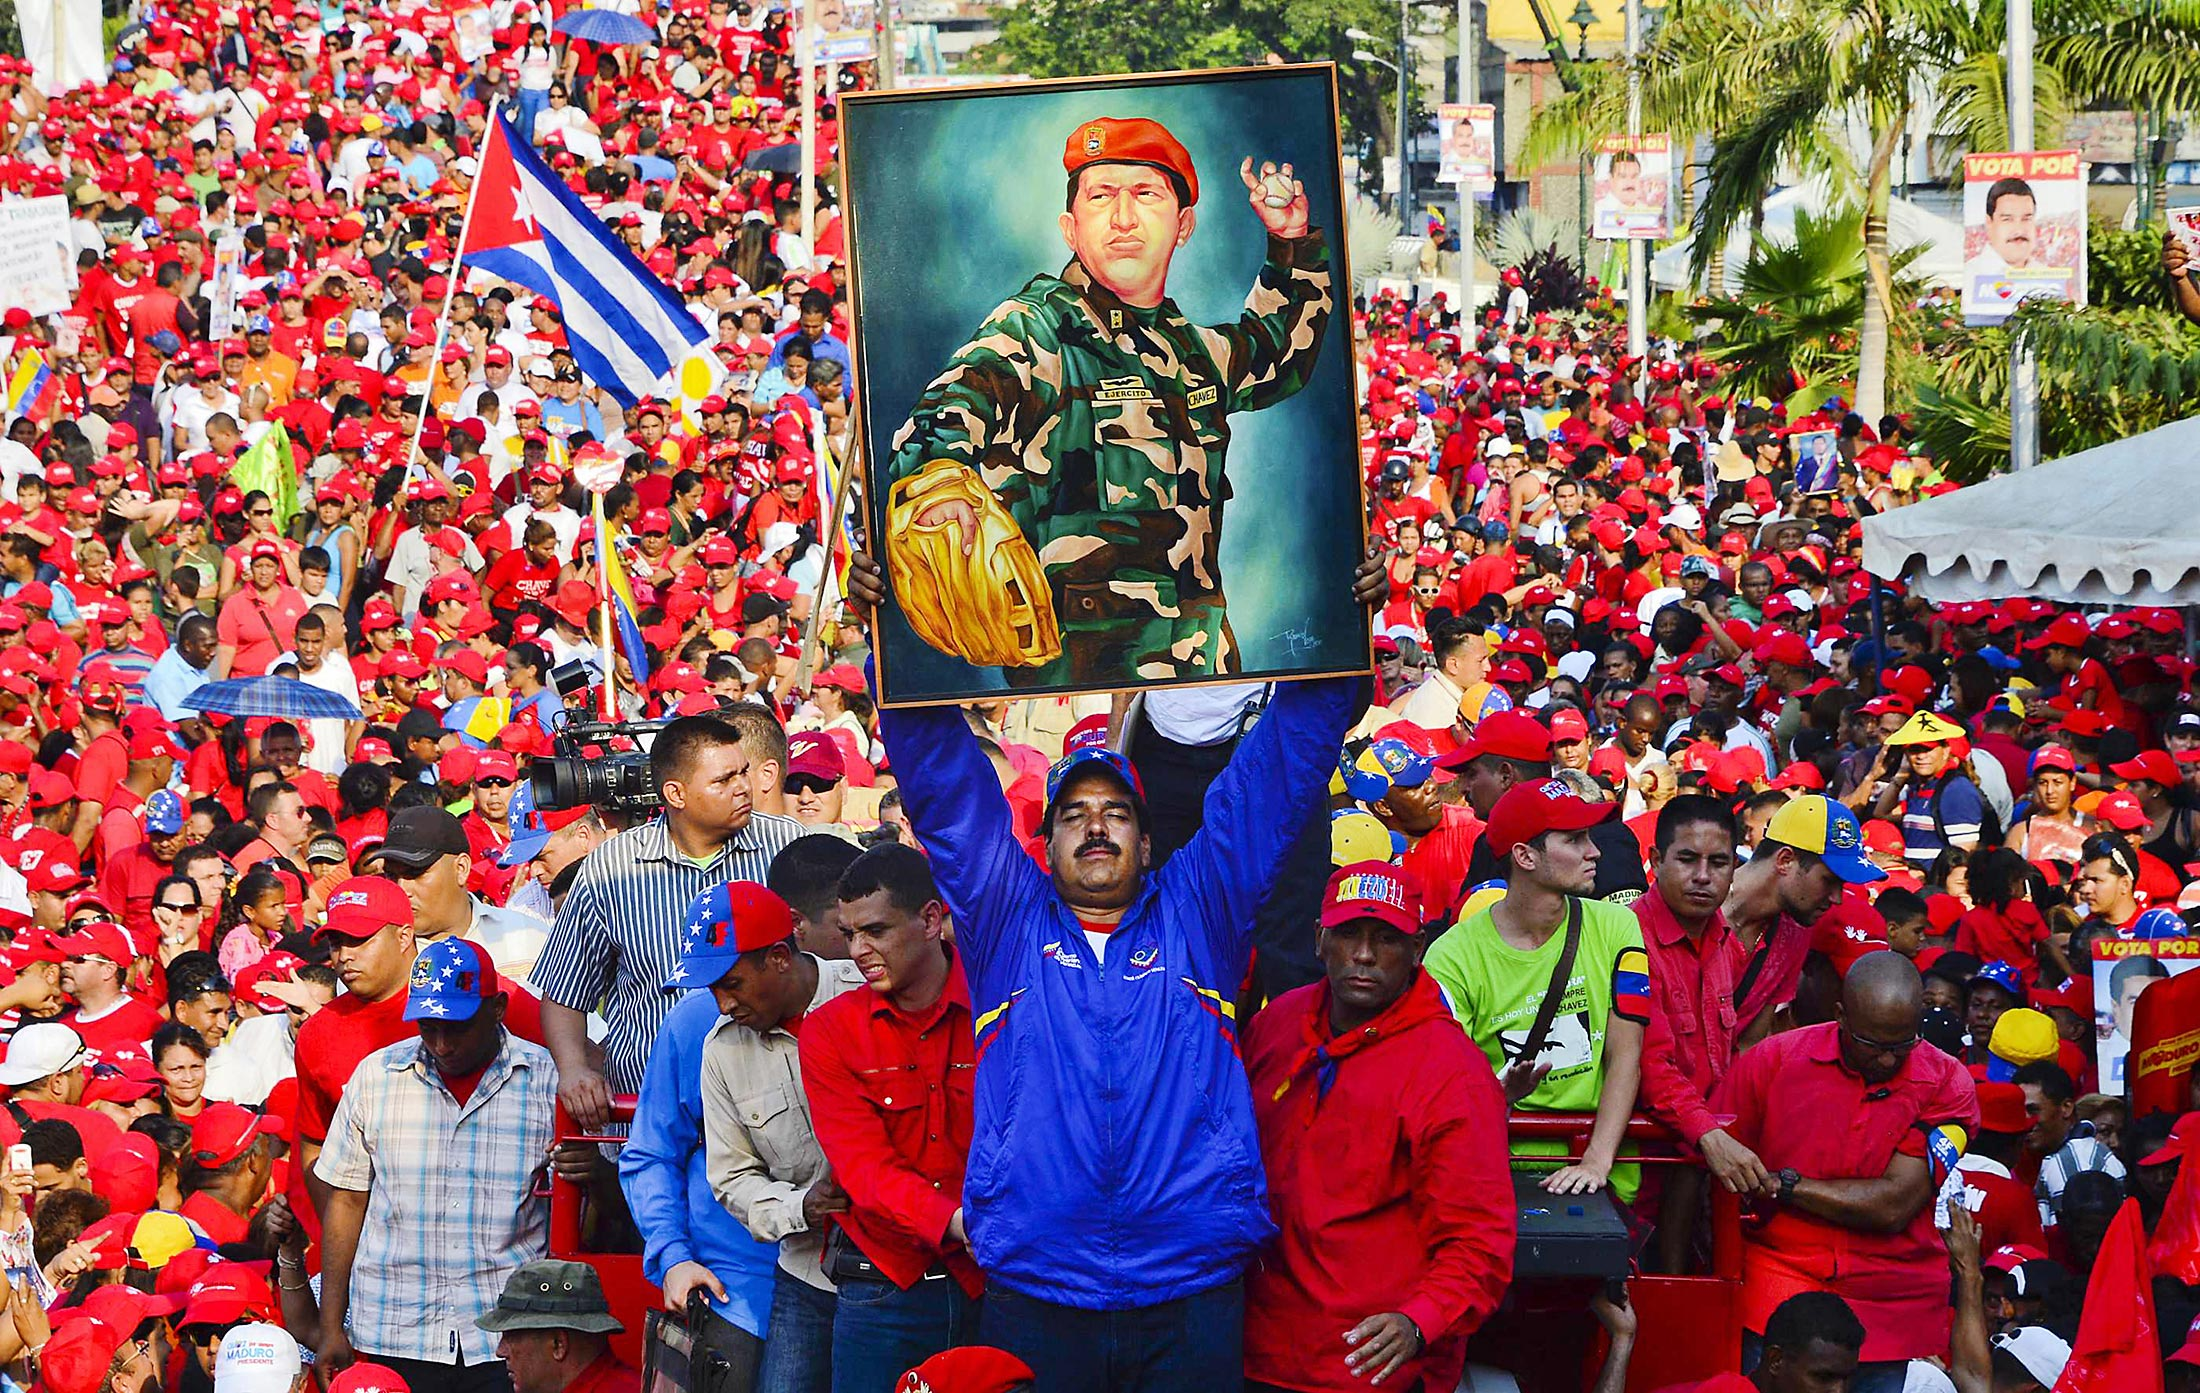 The Rise and Fall of Chavismo in Venezuela